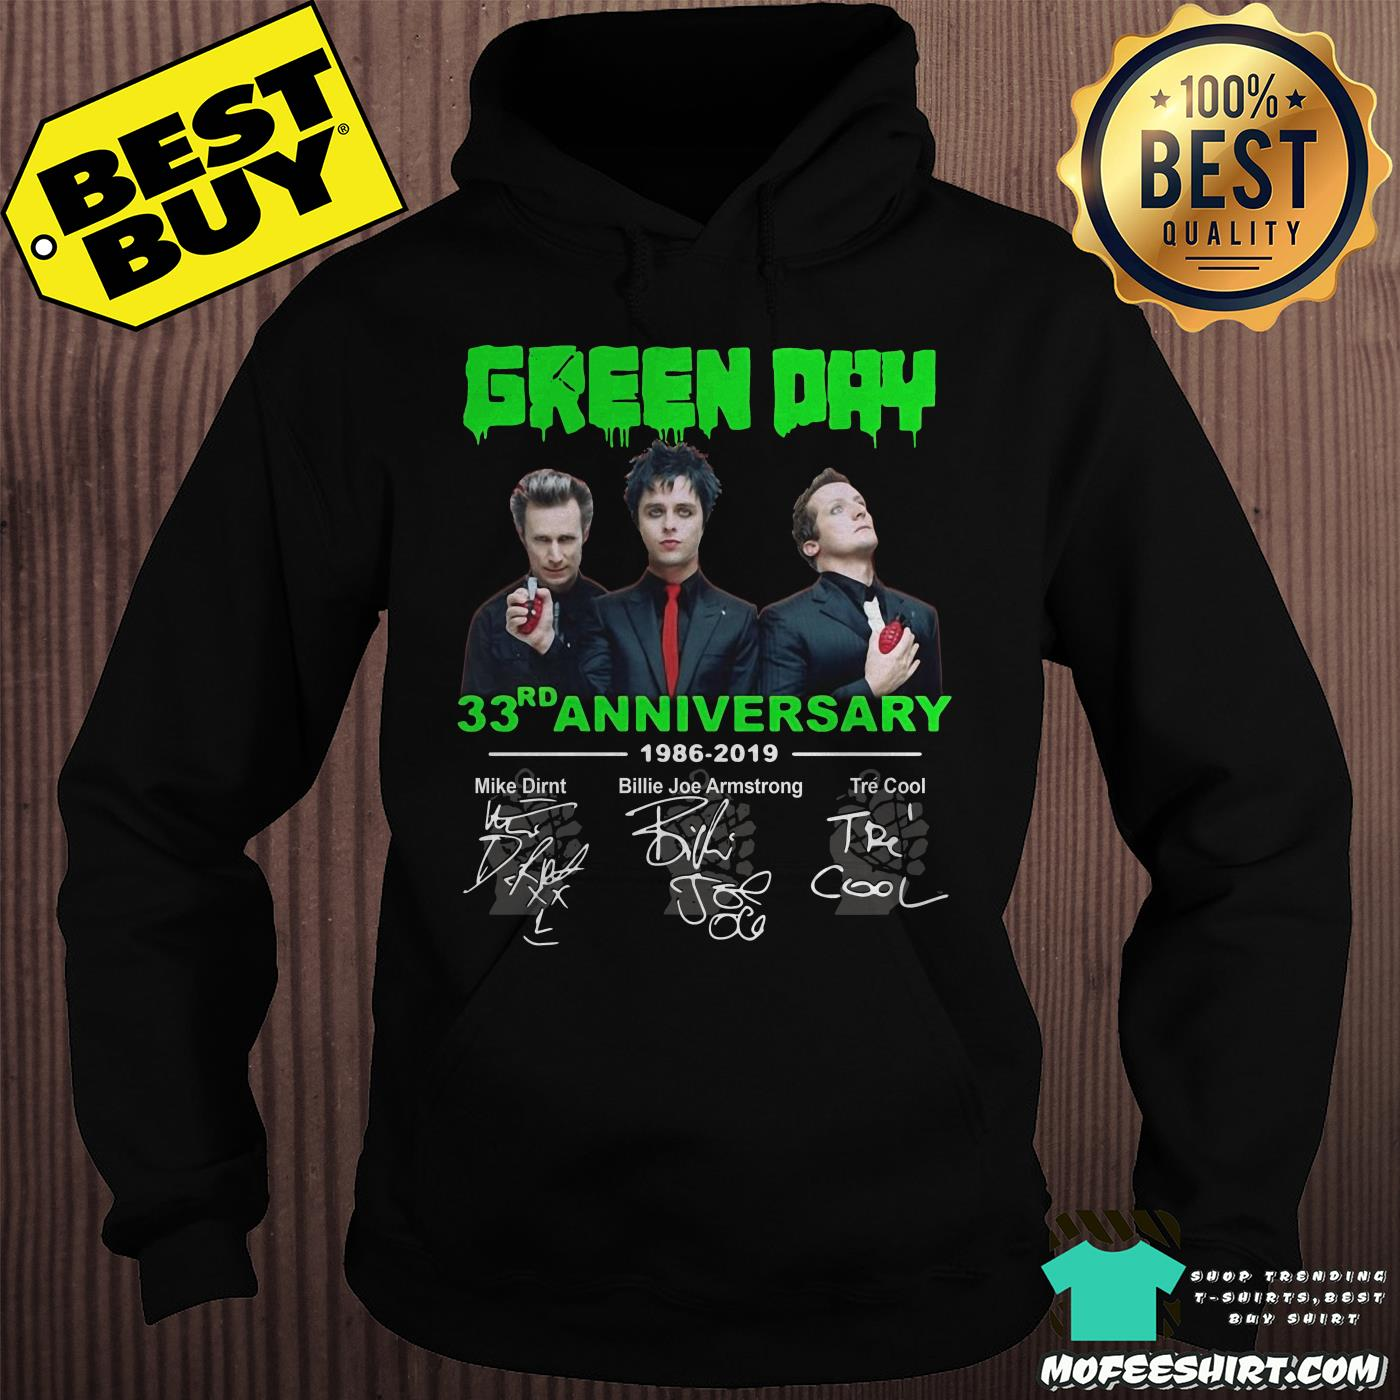 green day 33th anniversary 1986 2019 signatures hoodie - Green Day 33rd Anniversary 1986-2019 signatures shirt